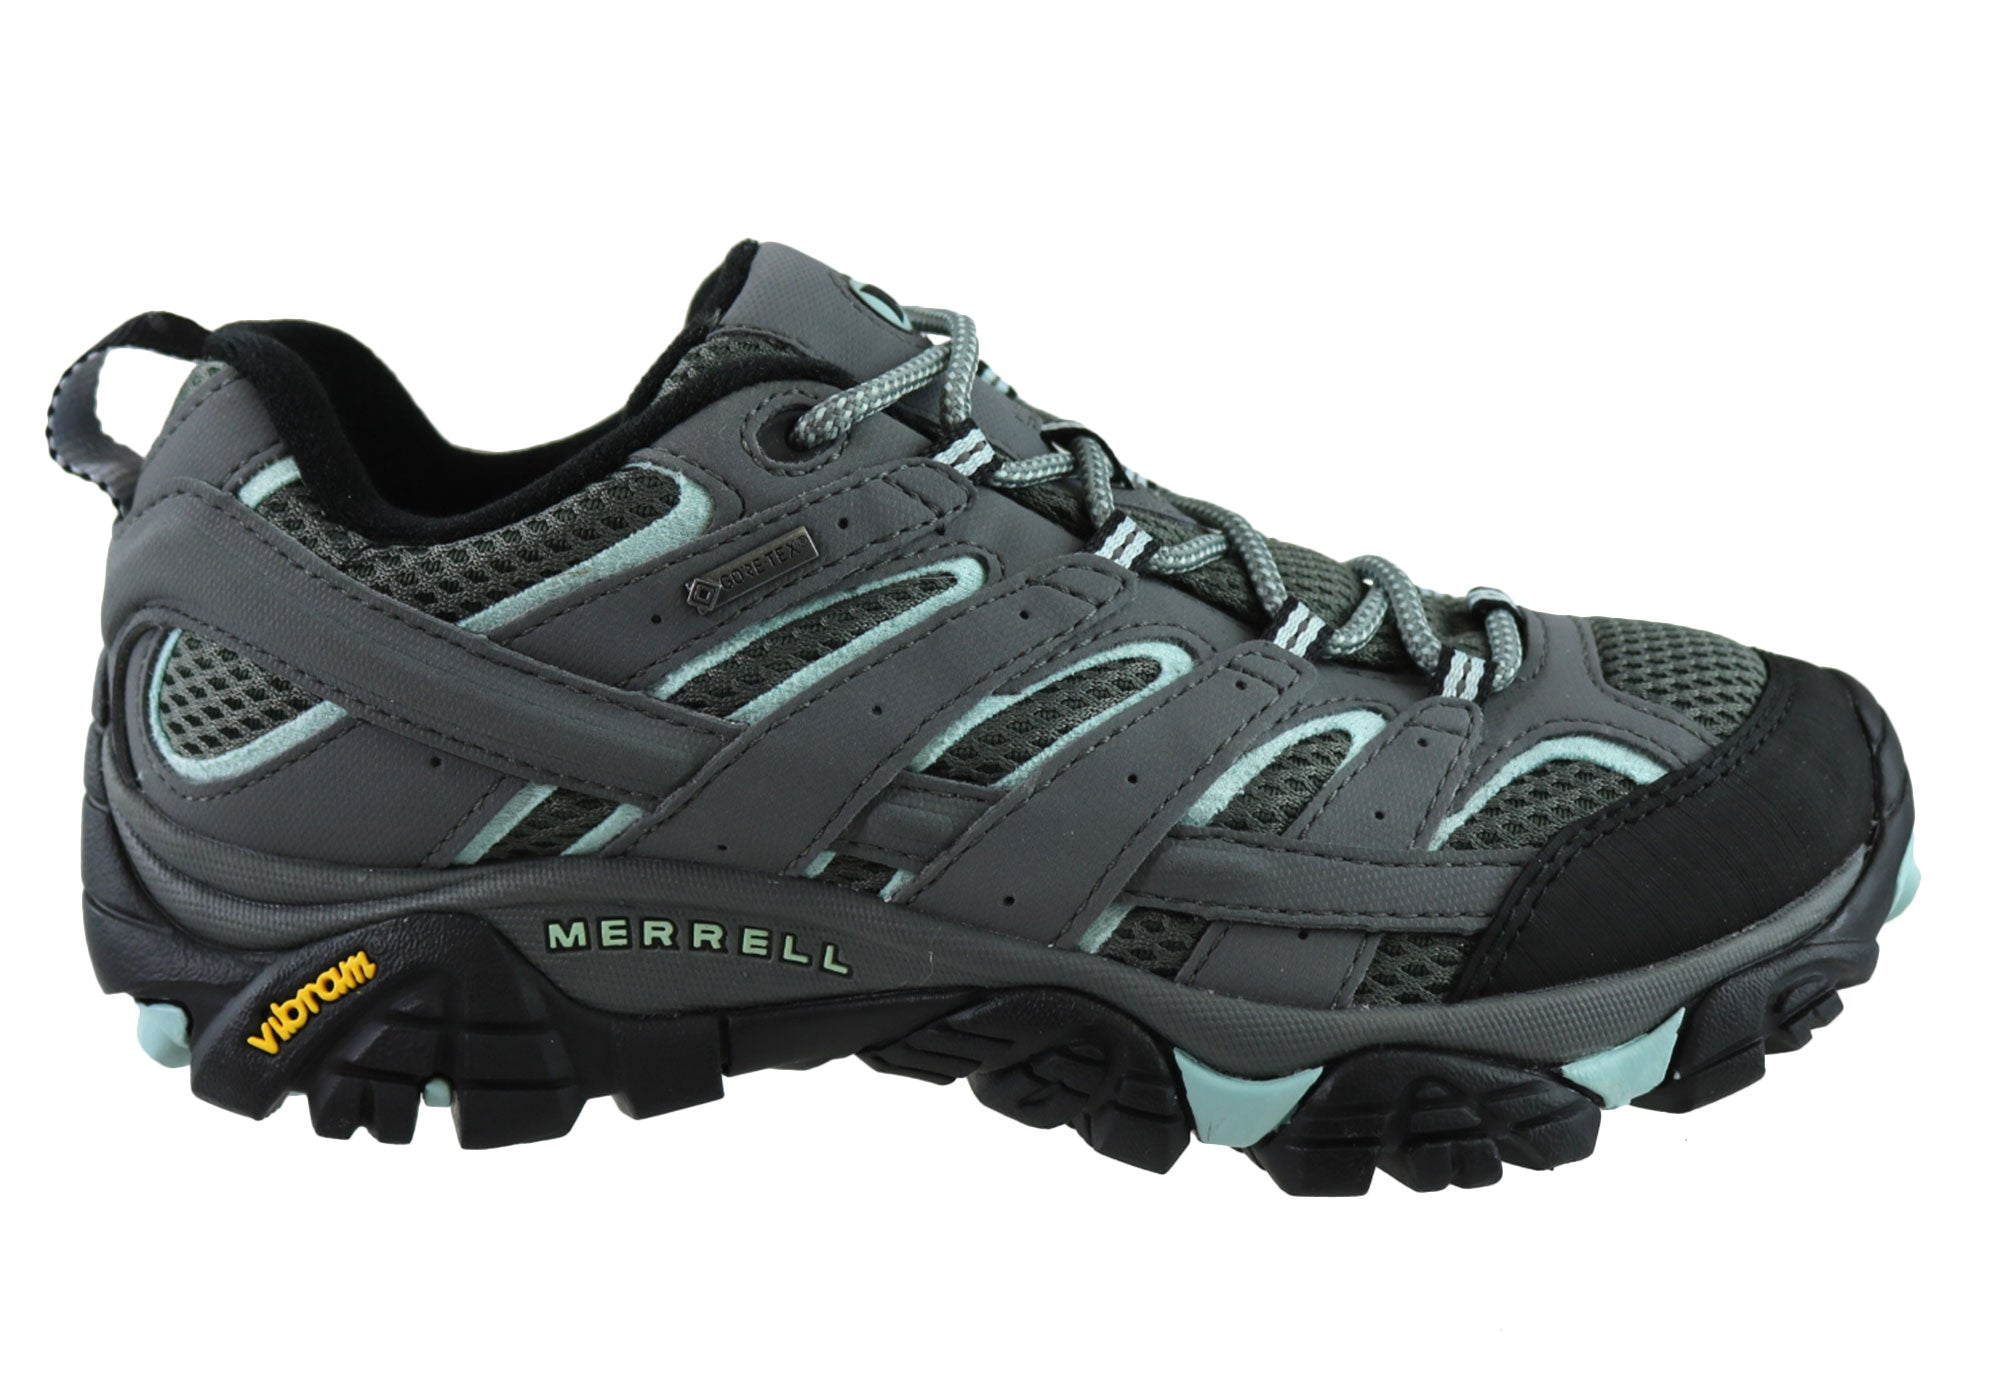 Merrell Moab 2 Gore-Tex Womens Comfortable Hiking Shoes  04462eded3a